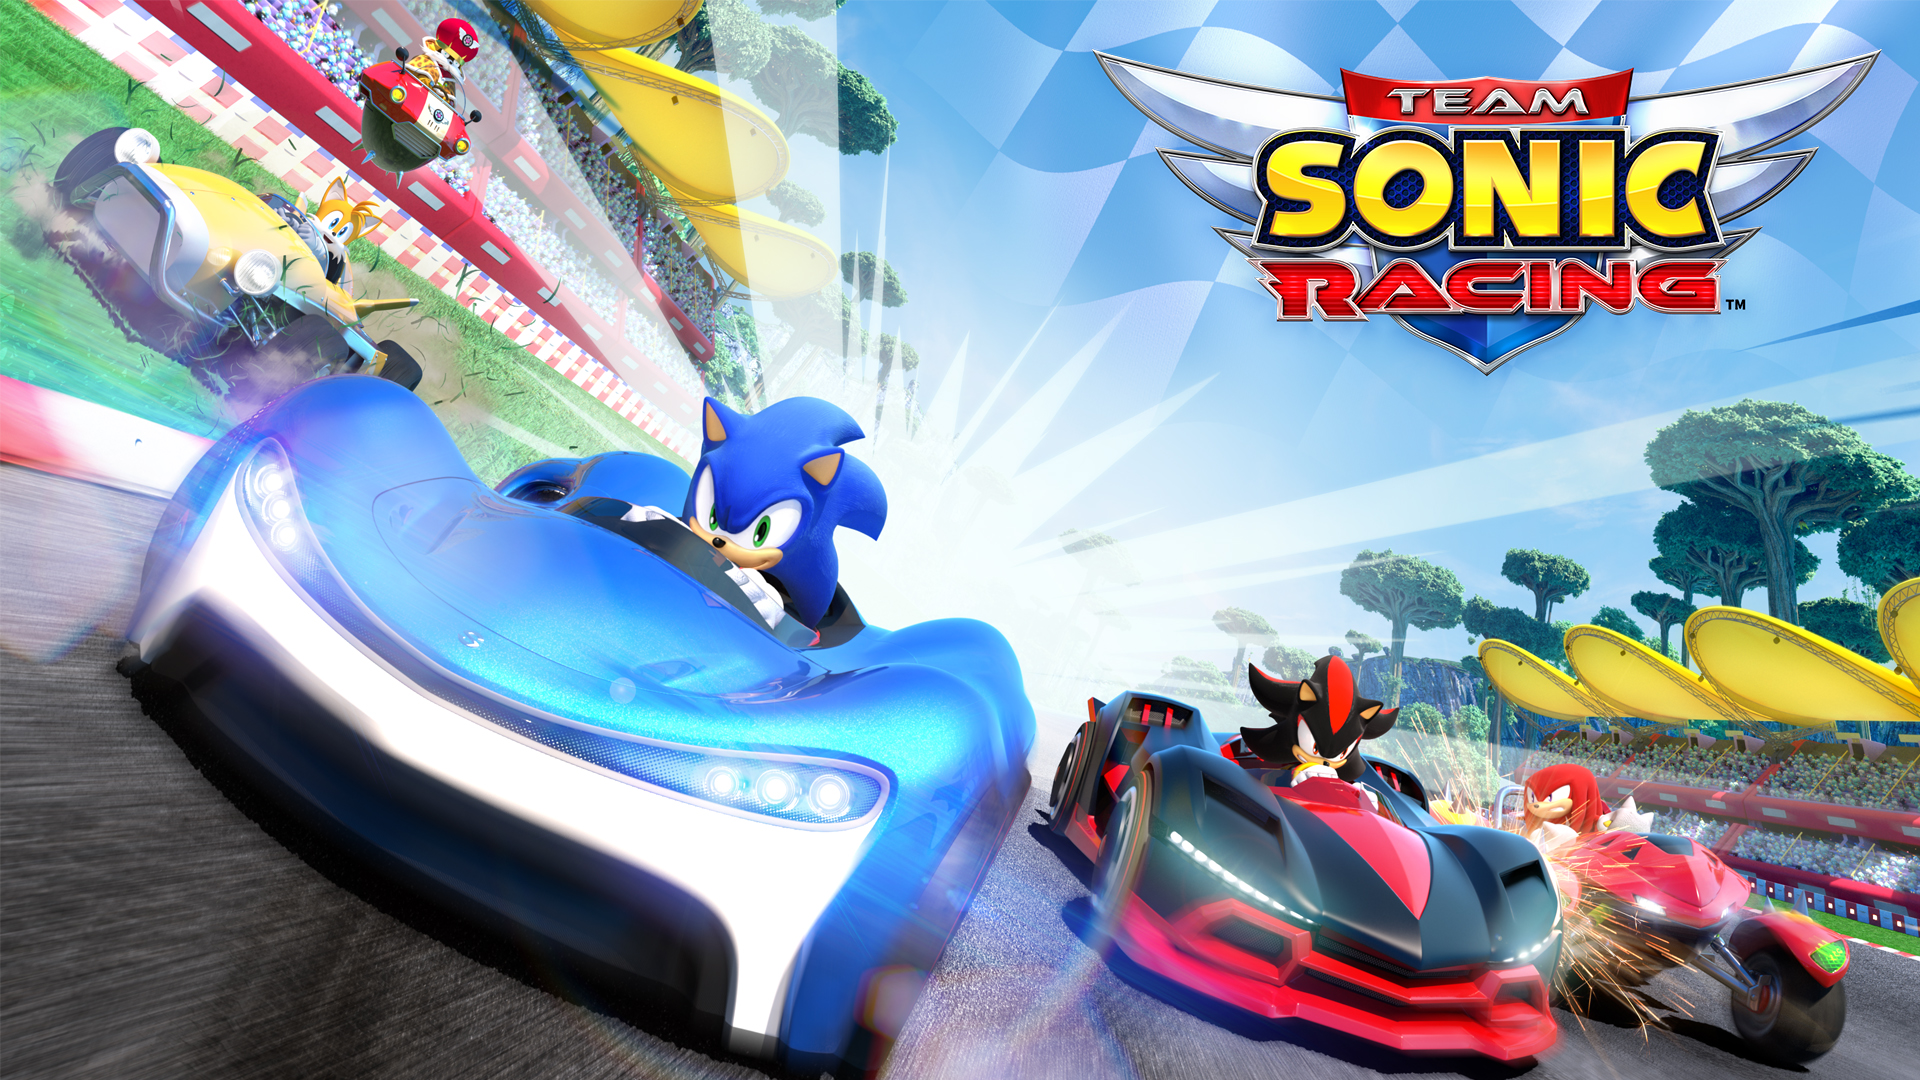 Team Sonic Racing Review - Better Together?